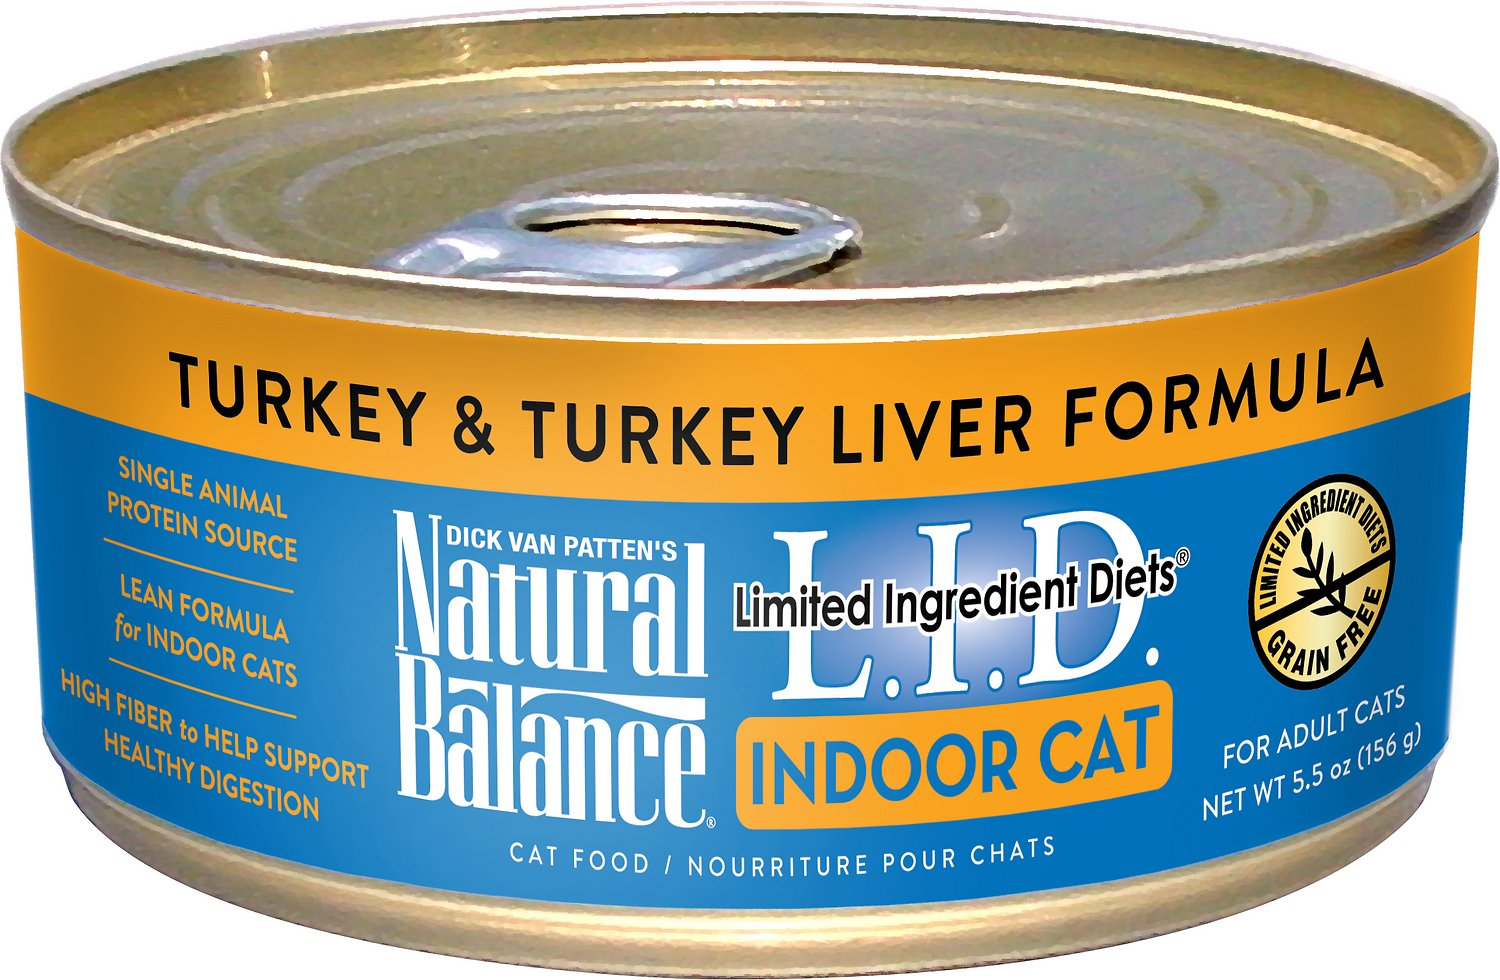 Natural Balance L.I.D. Limited Ingredient Diets Indoor Grain-Free Turkey & Turkey Liver Formula Wet Cat Food, 5.5-oz